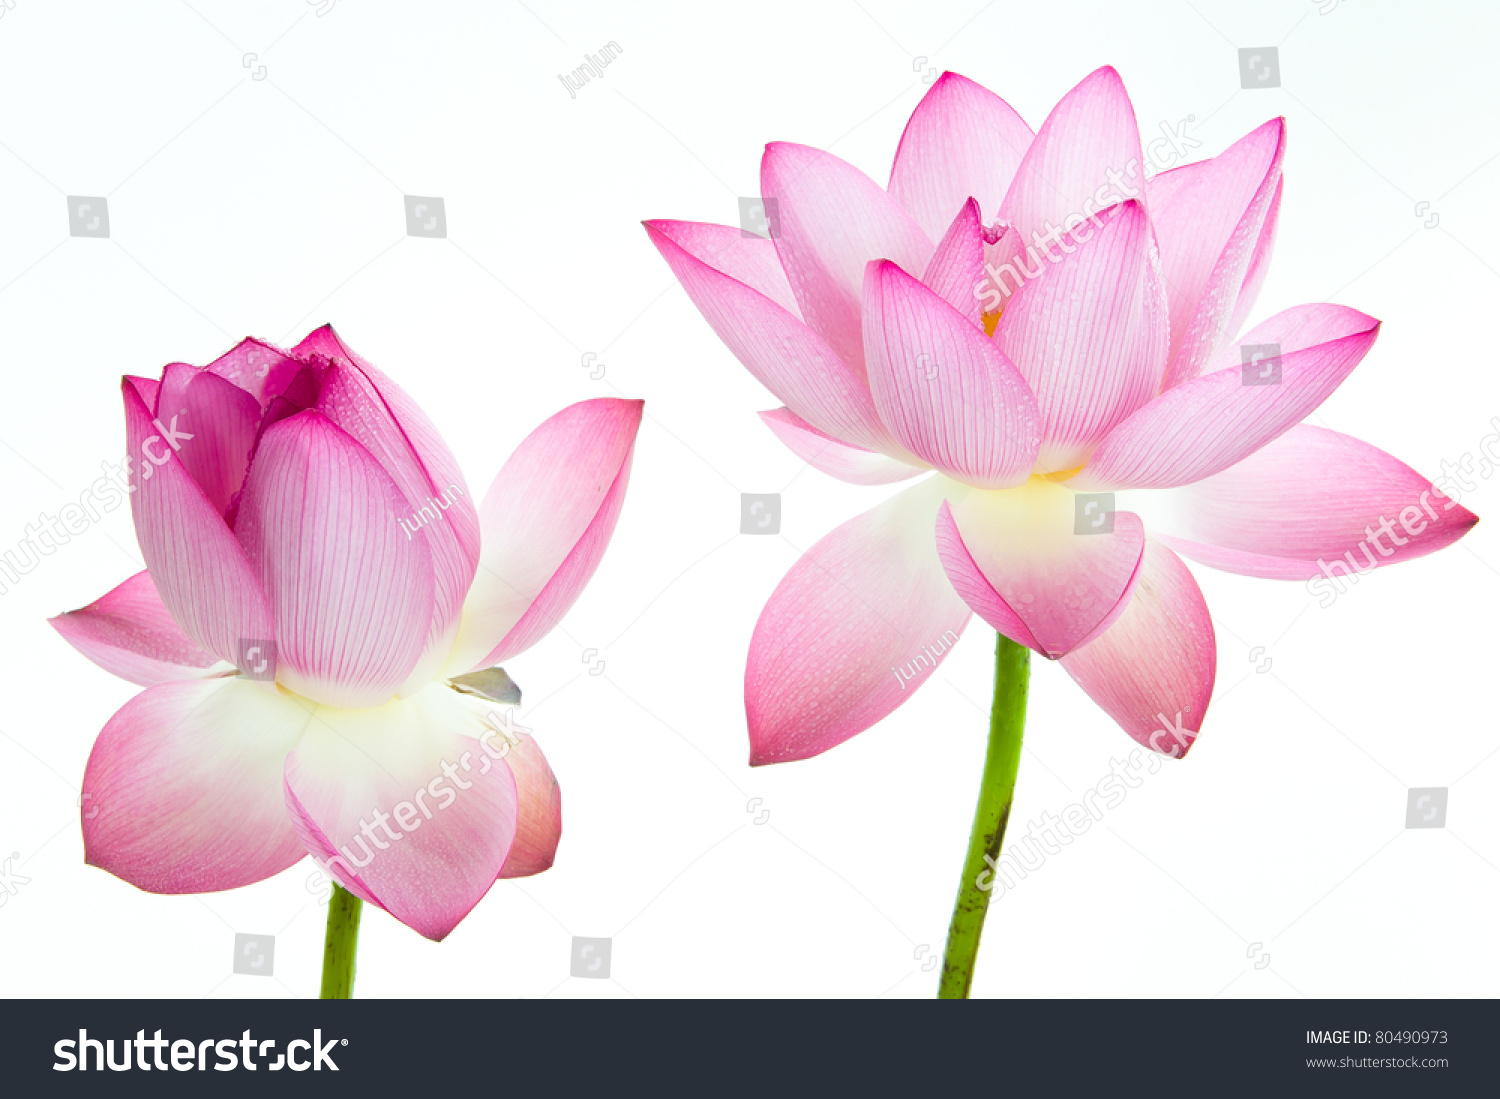 Pink water lily flower lotus and white background the lotus pink water lily flower lotus and white background the lotus flower water lily is national flower for india lotus flower is a important symbol in asian izmirmasajfo